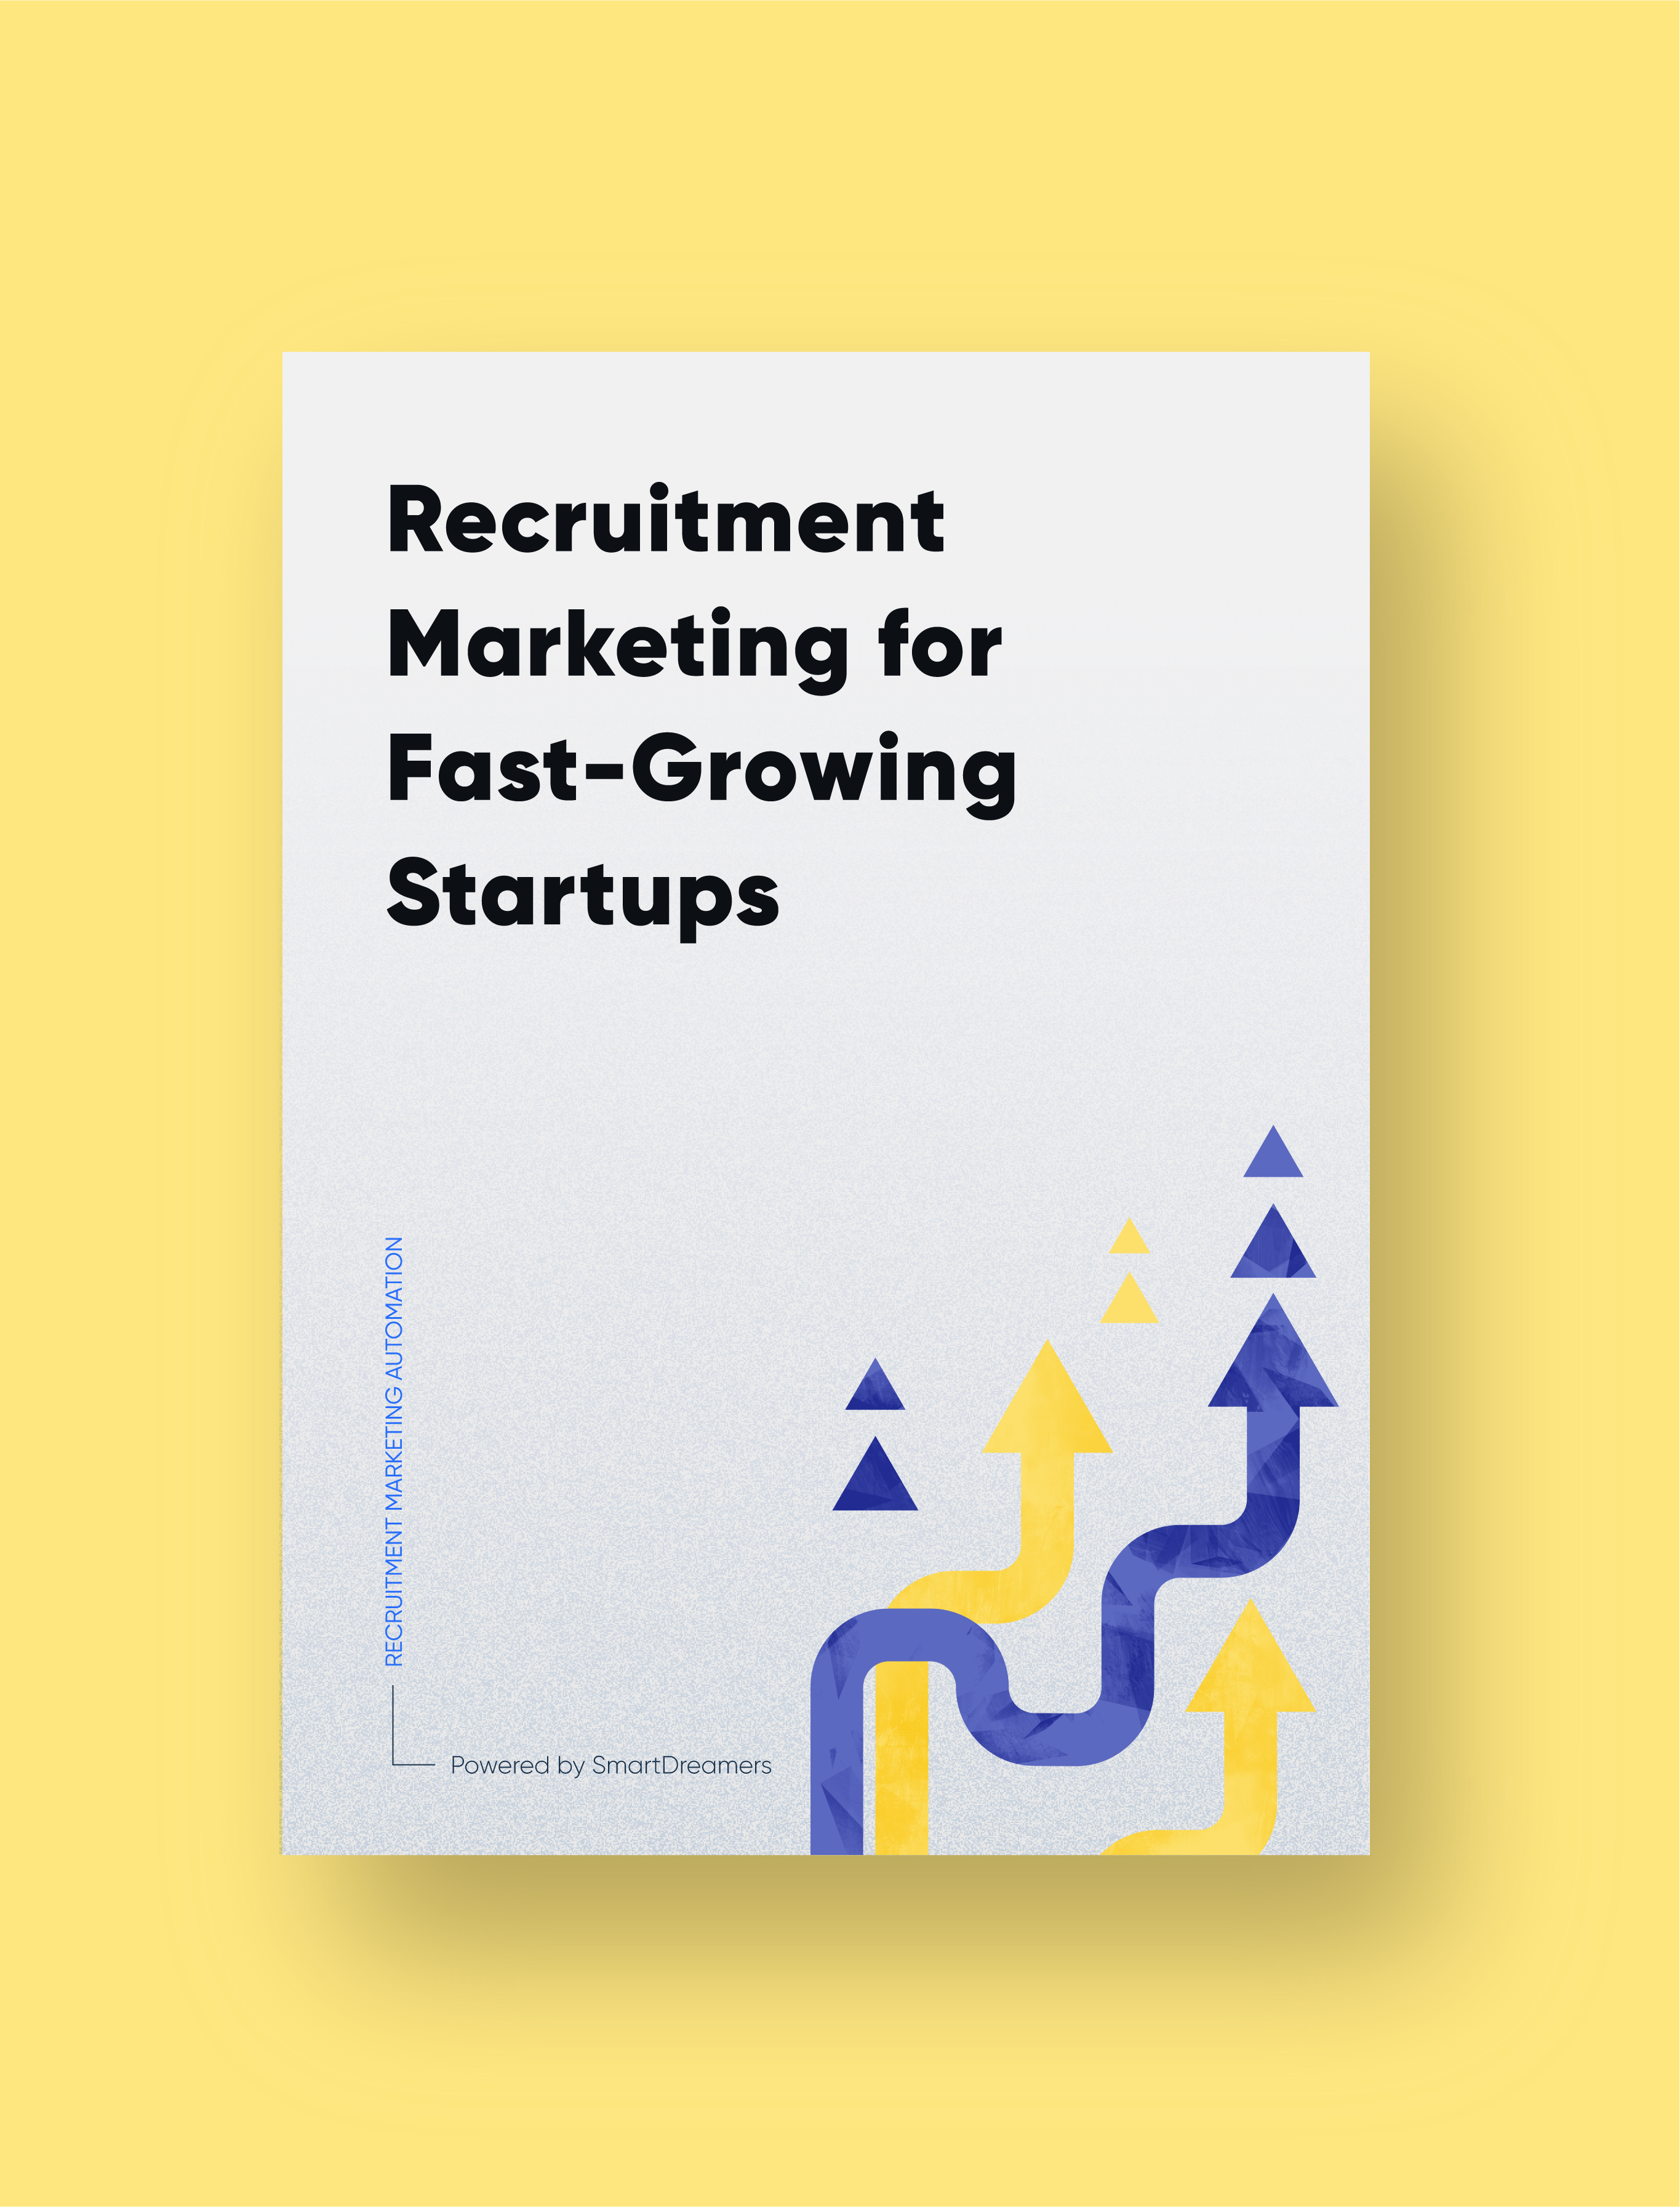 Recruitment Marketing for Fast-Growing Startups